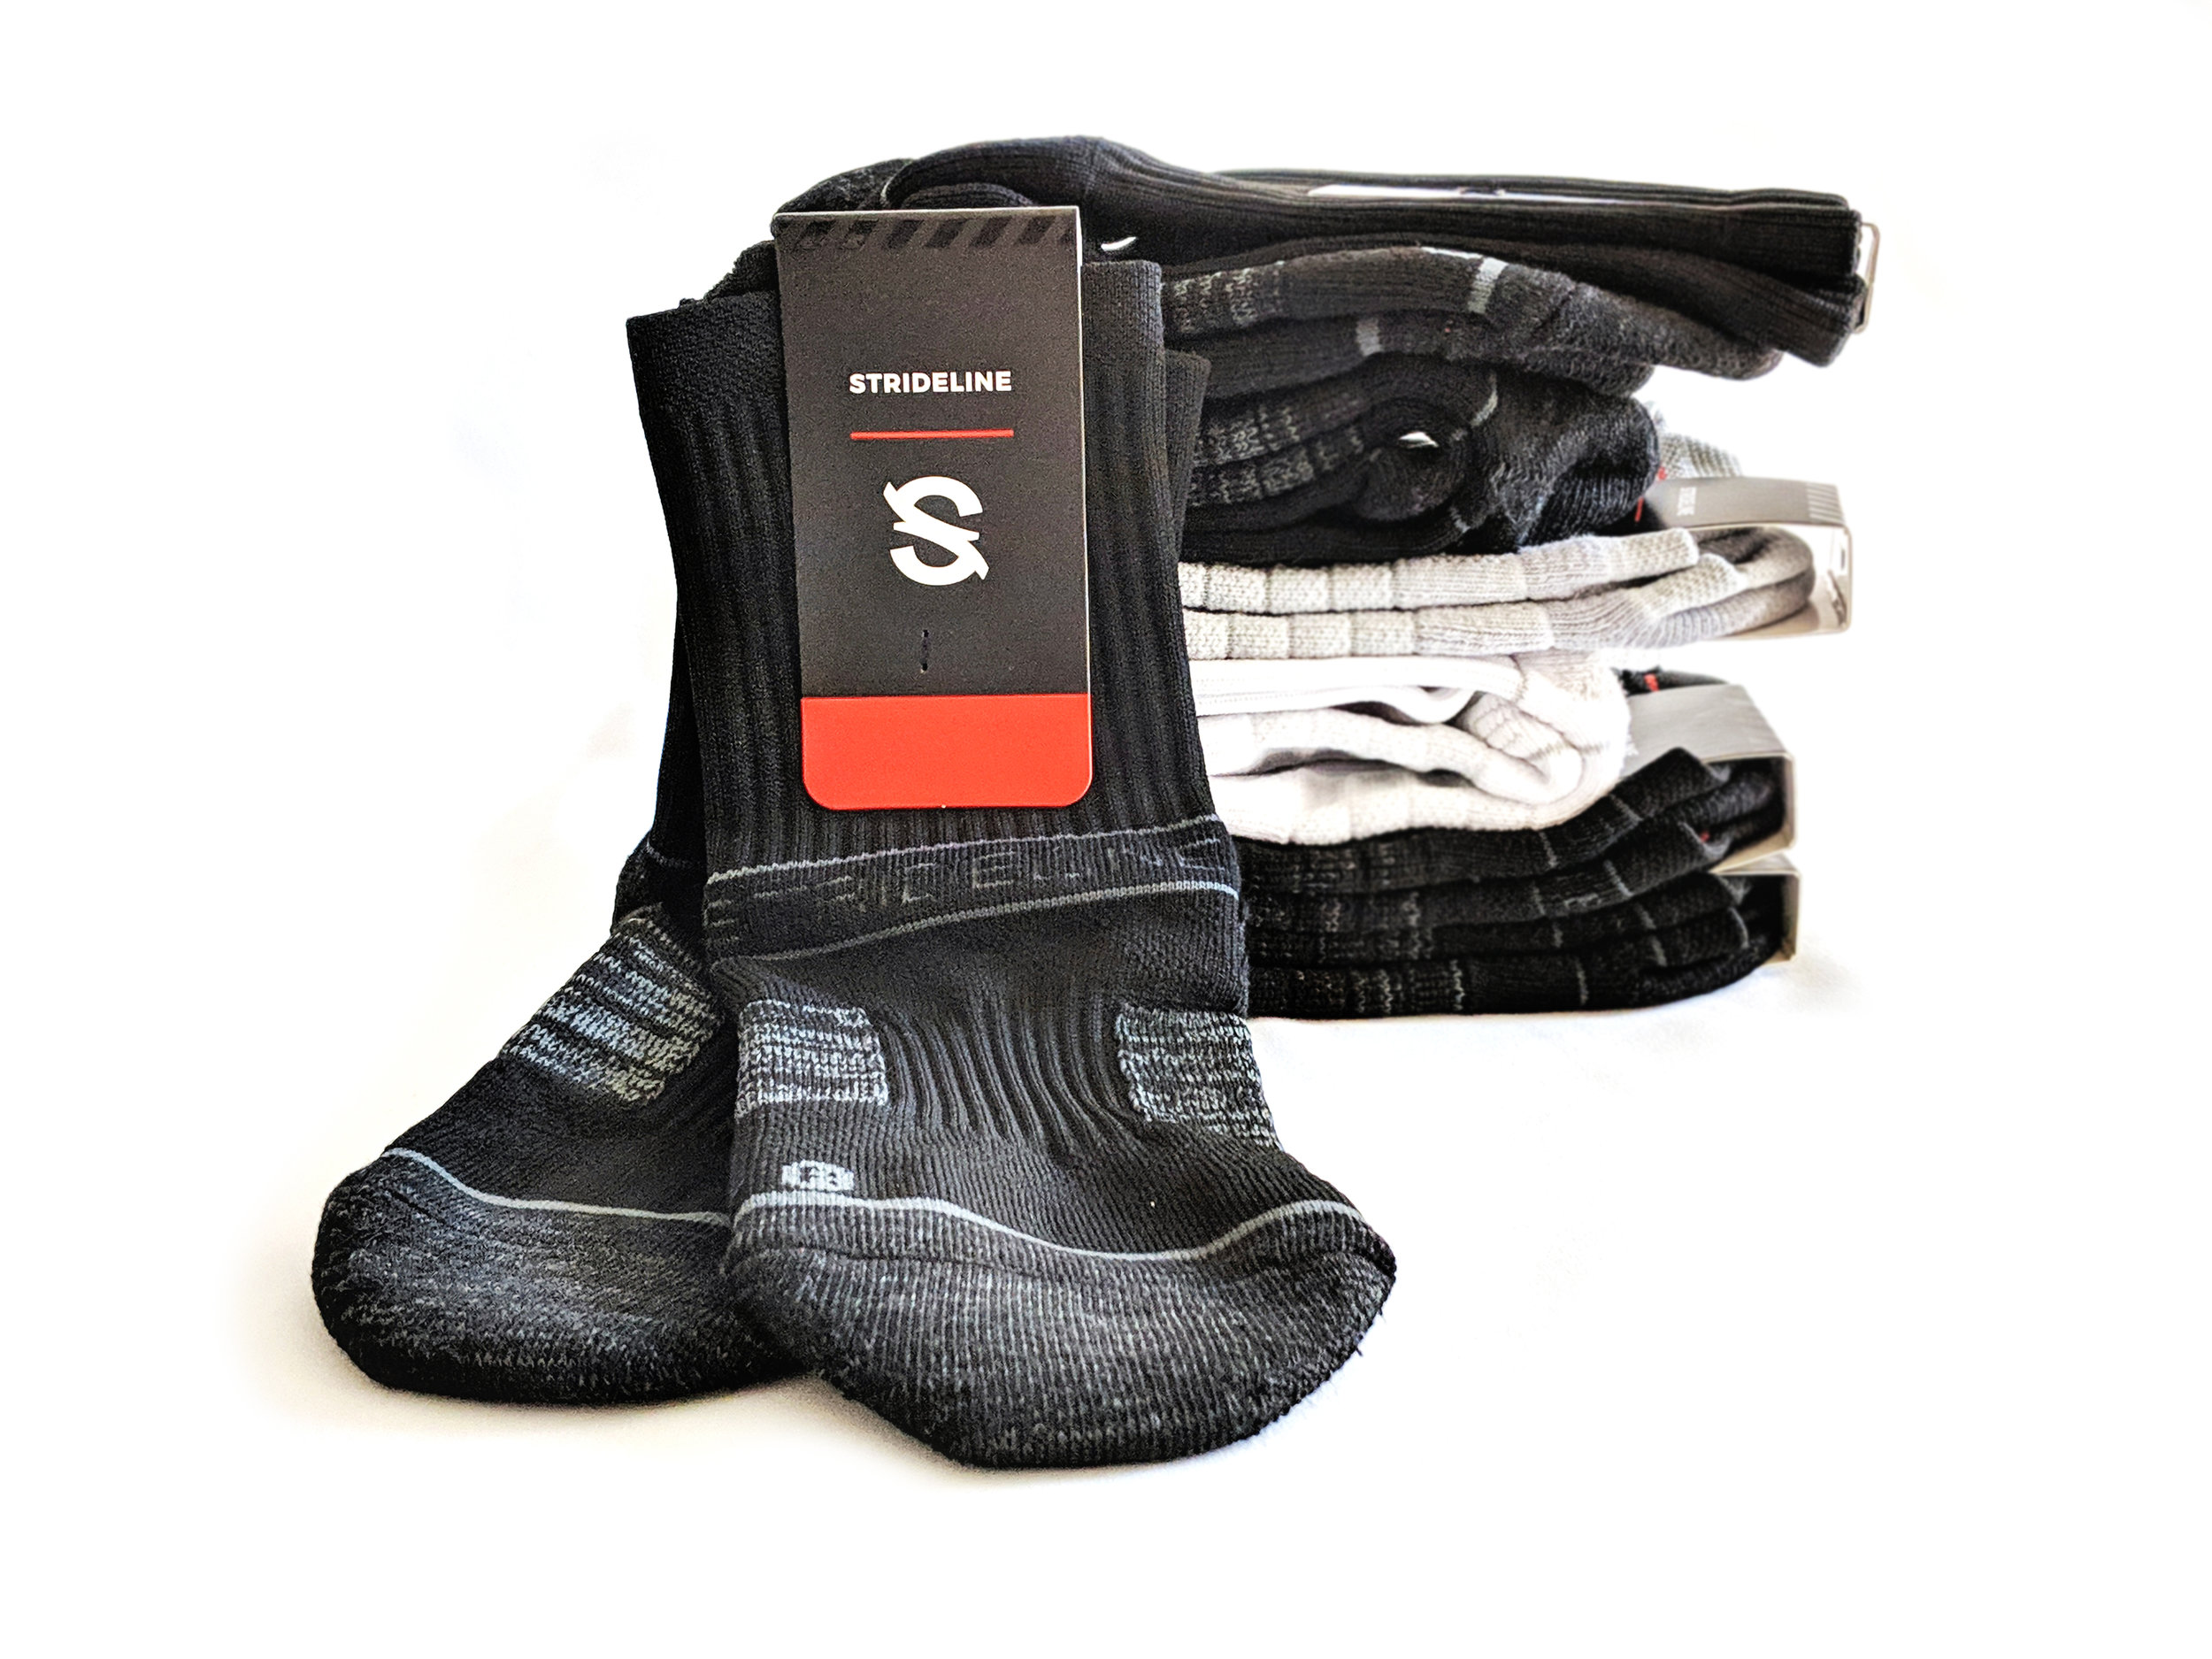 Strideline socks offer a striking design; the cushion, specialized yarns, and packaging really make it work.